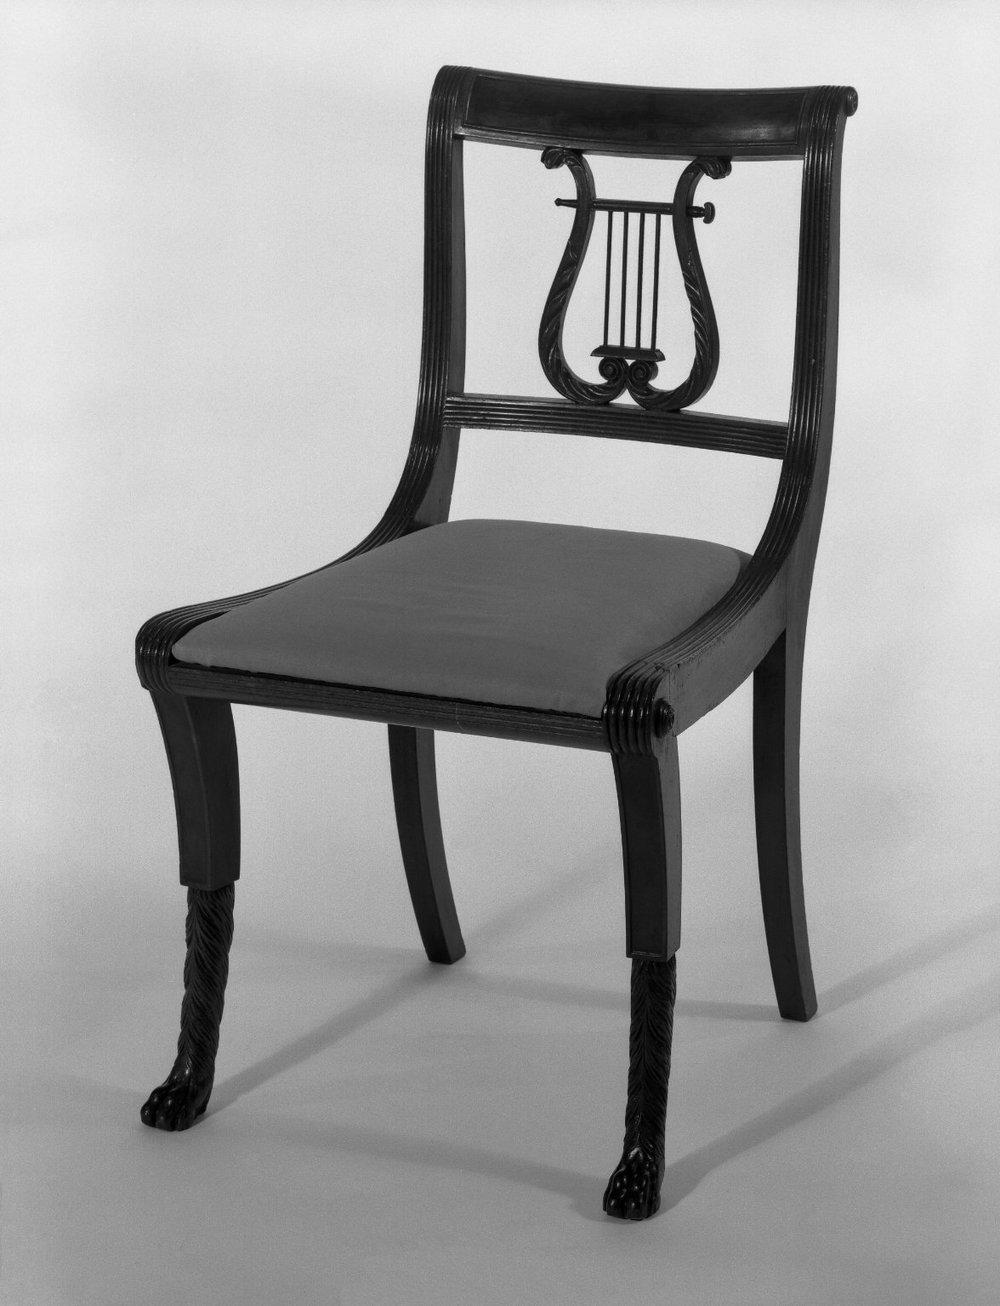 Duncan Phyfe (American, born Scotland, 1768-1854).  Chair, One from a Set of 10 , 1816. Mahogany, watered damask, height of back: 23 1/4 in. (59.1 cm). Brooklyn Museum, H. Randolph Lever Fund, 67.19.2. Creative Commons-BY (Photo:  Brooklyn Museum , 67.19.2_bw_IMLS.jpg)